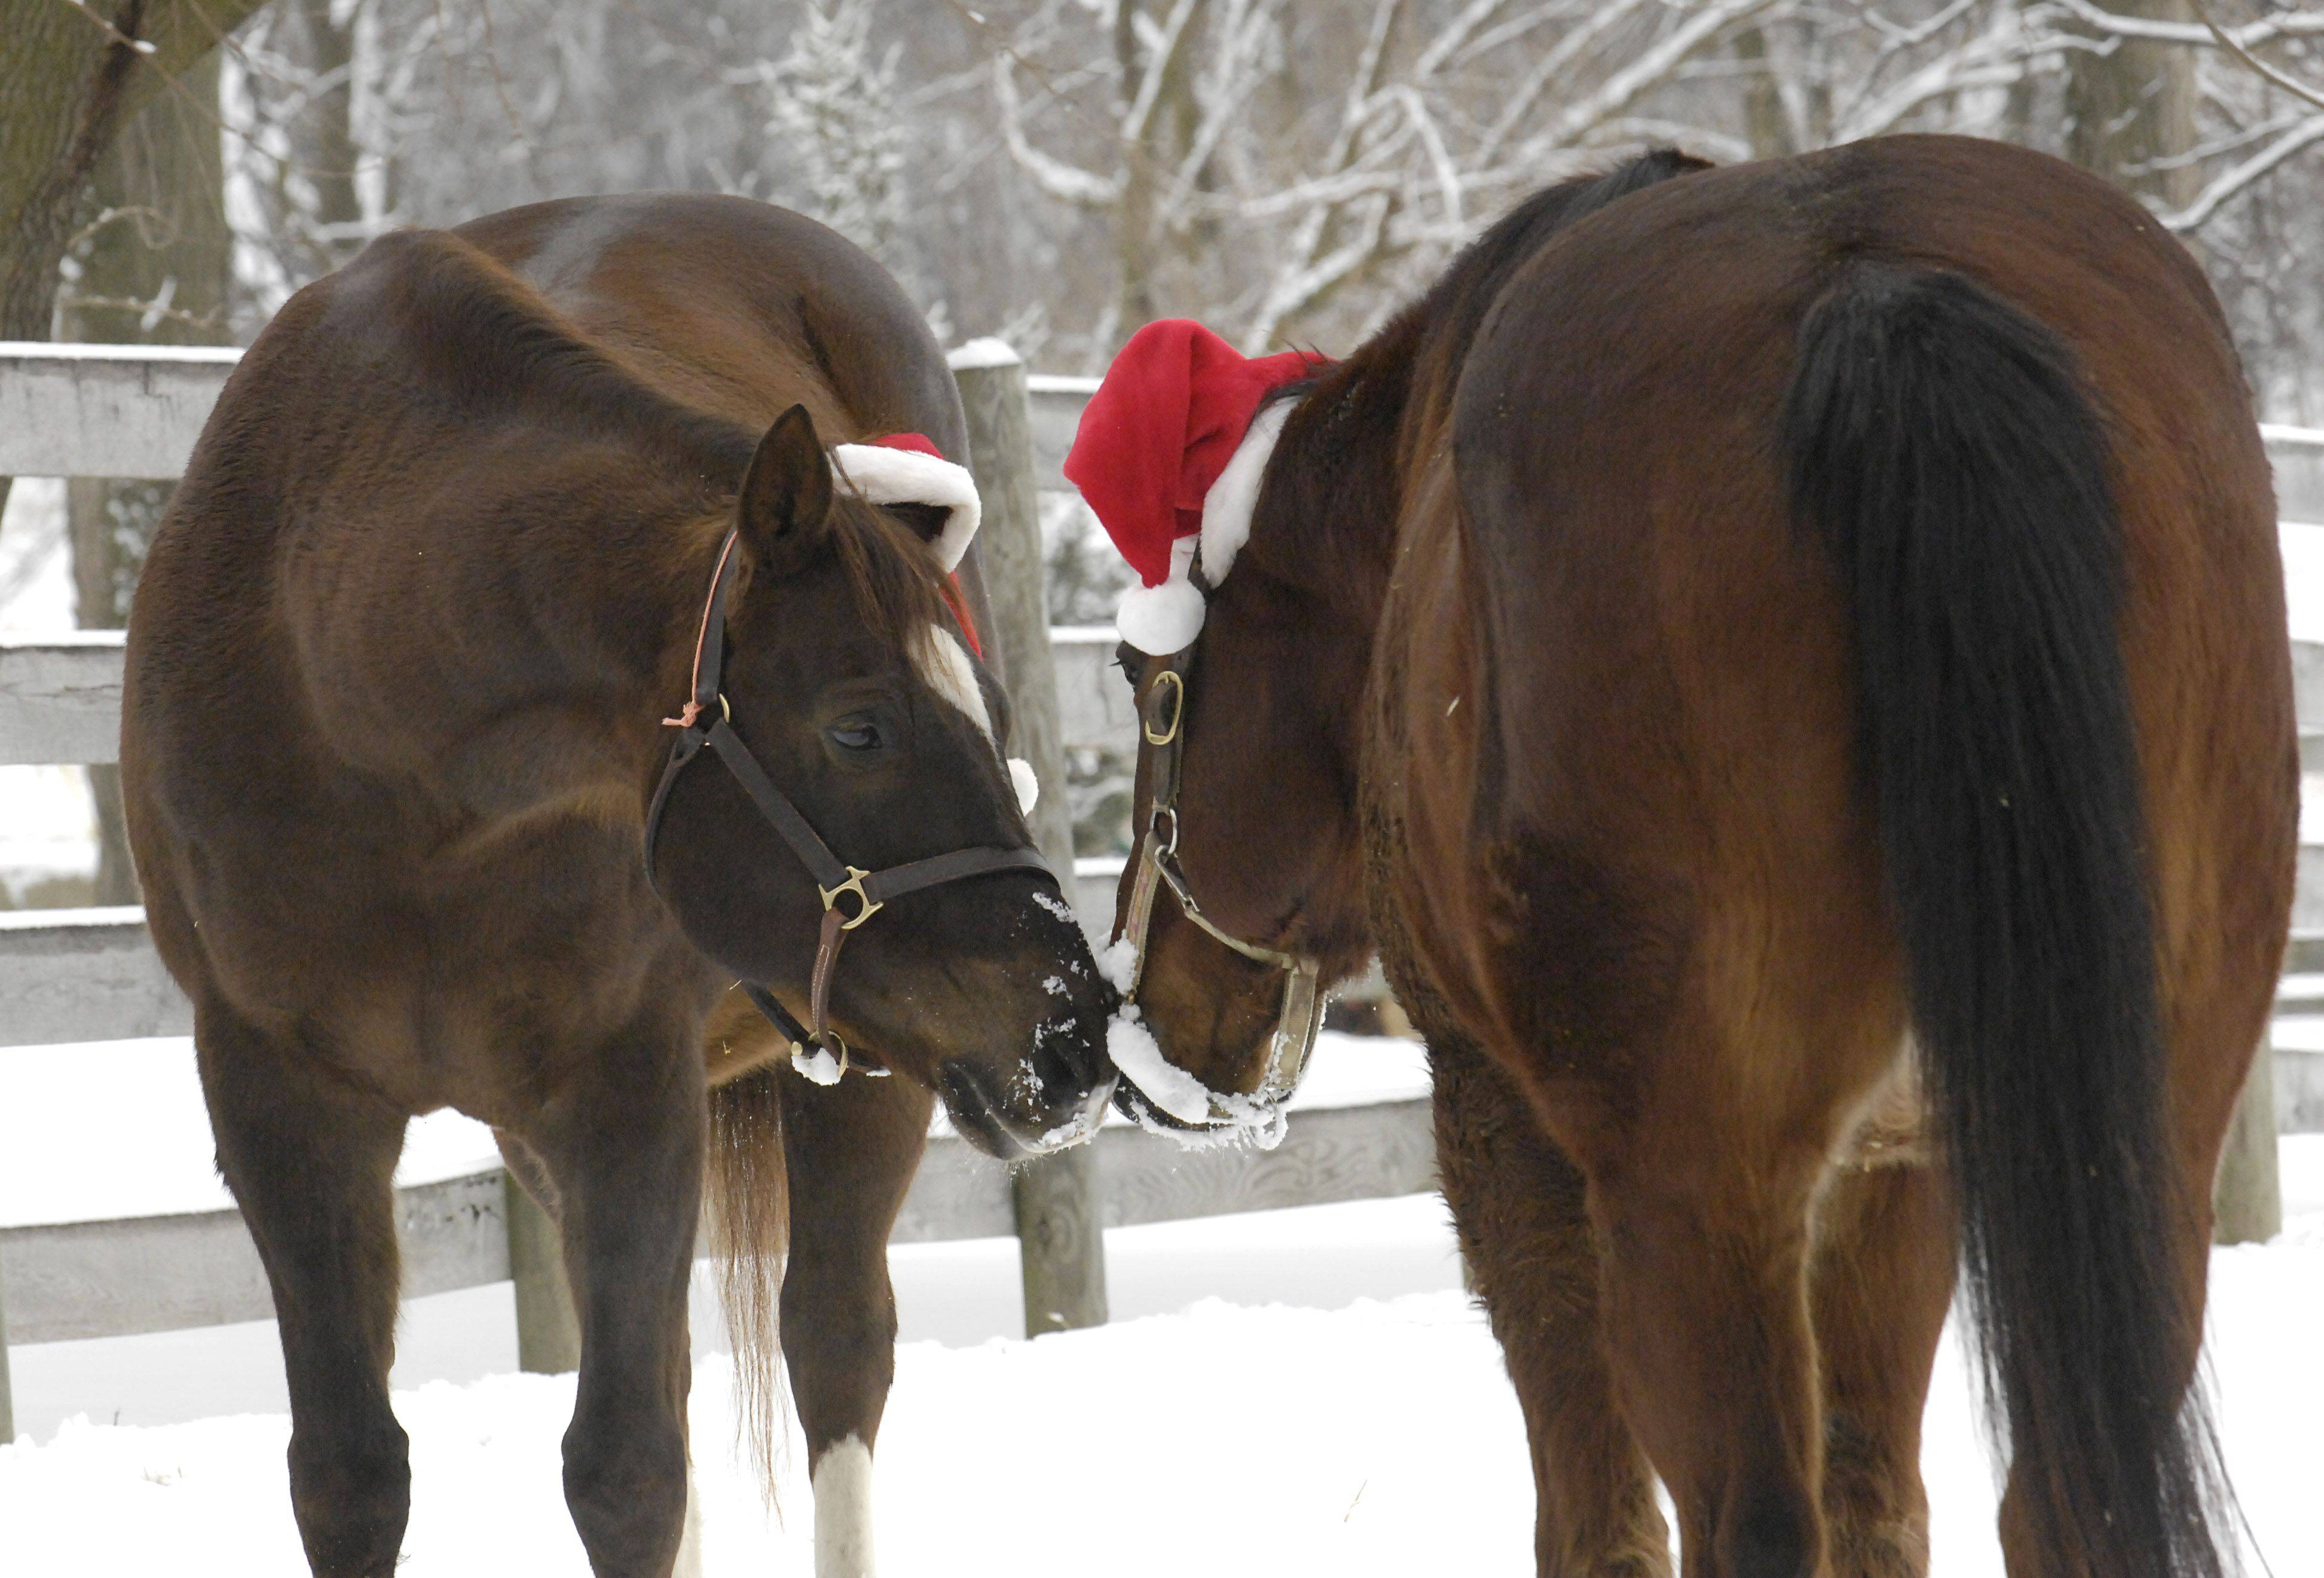 Shortstop, a 14-year-old American appendix quarterhorse-thoroughbred mix, finds a pal also wearing a Santa hat at Canterfield Farm in West Dundee on Christmas Day.